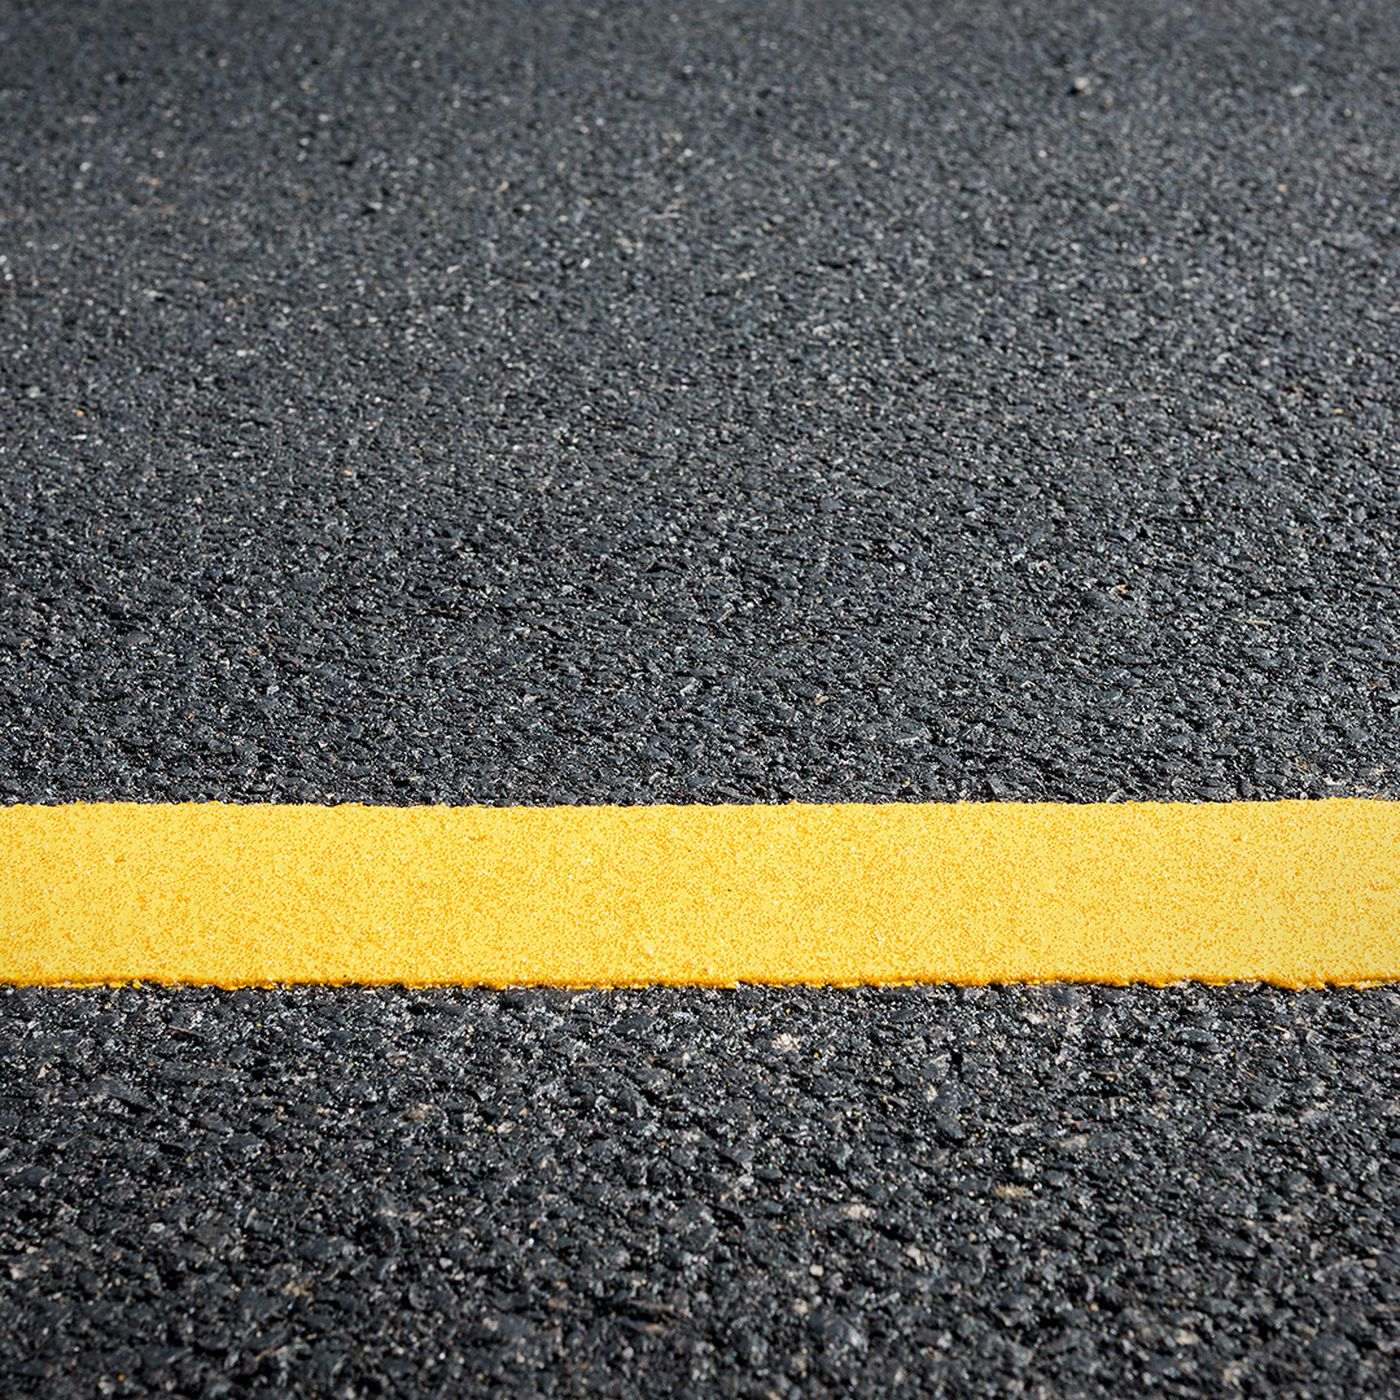 road diets lane conversions and traffic calming explained vox